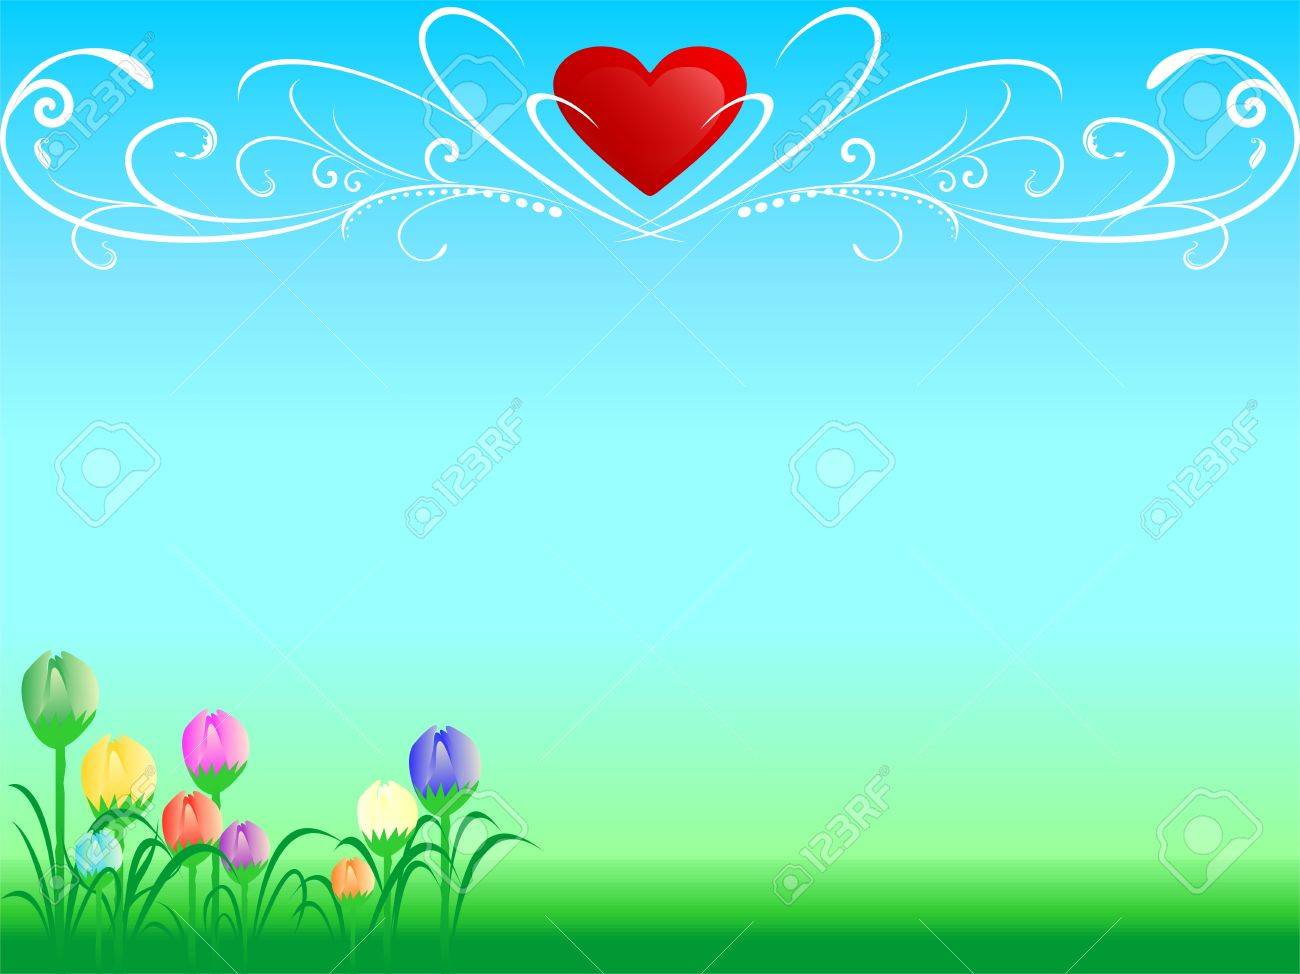 Abstract love background - 10748468